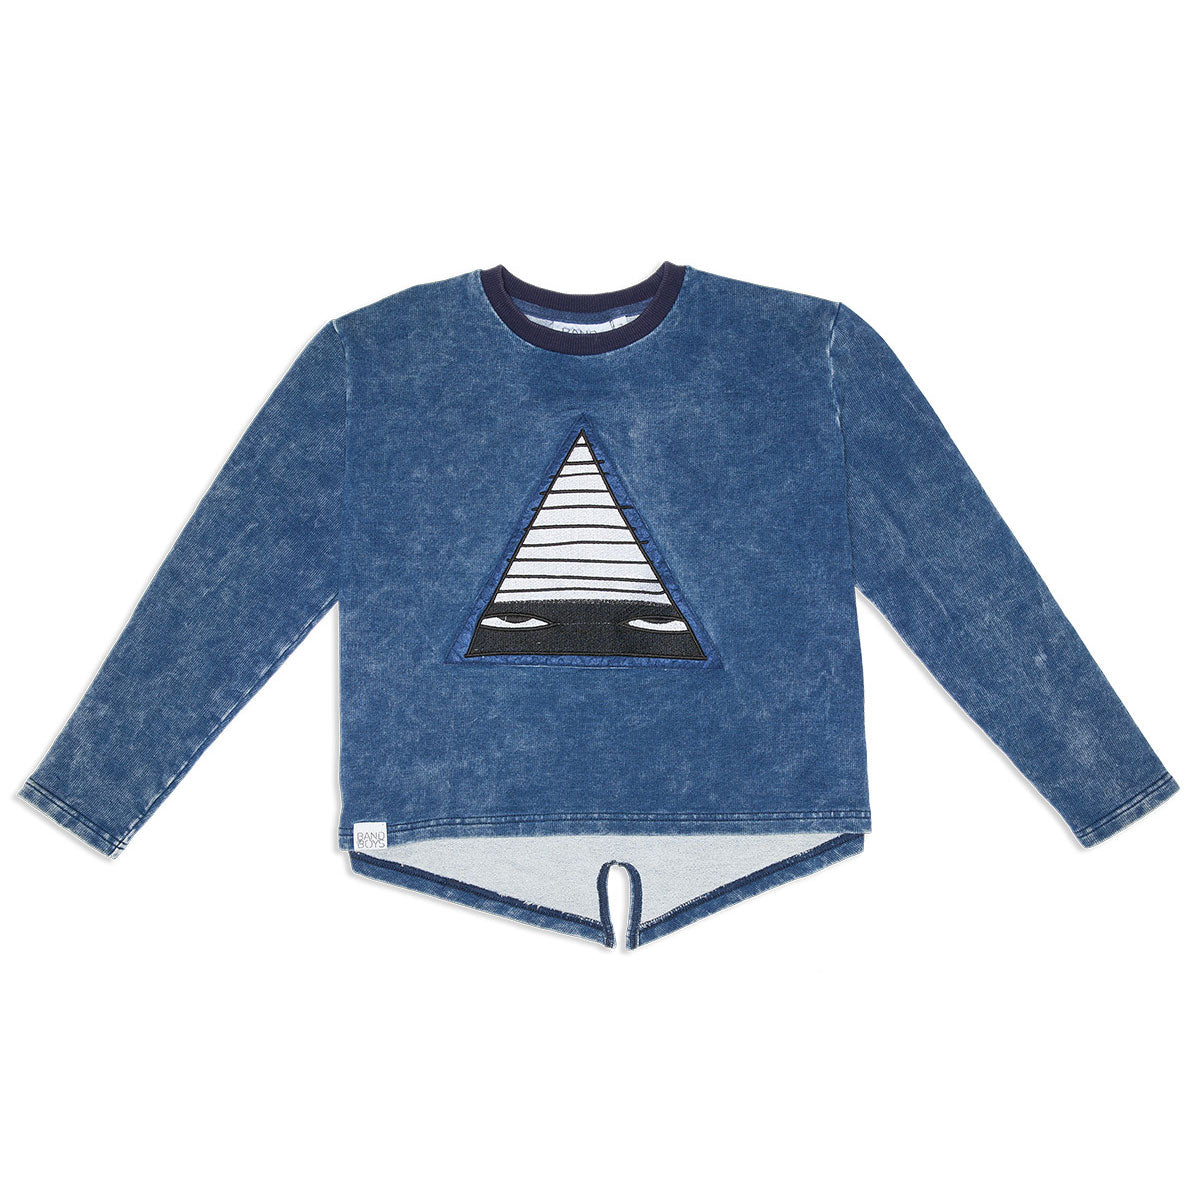 Just a Triangle Patch Jumper